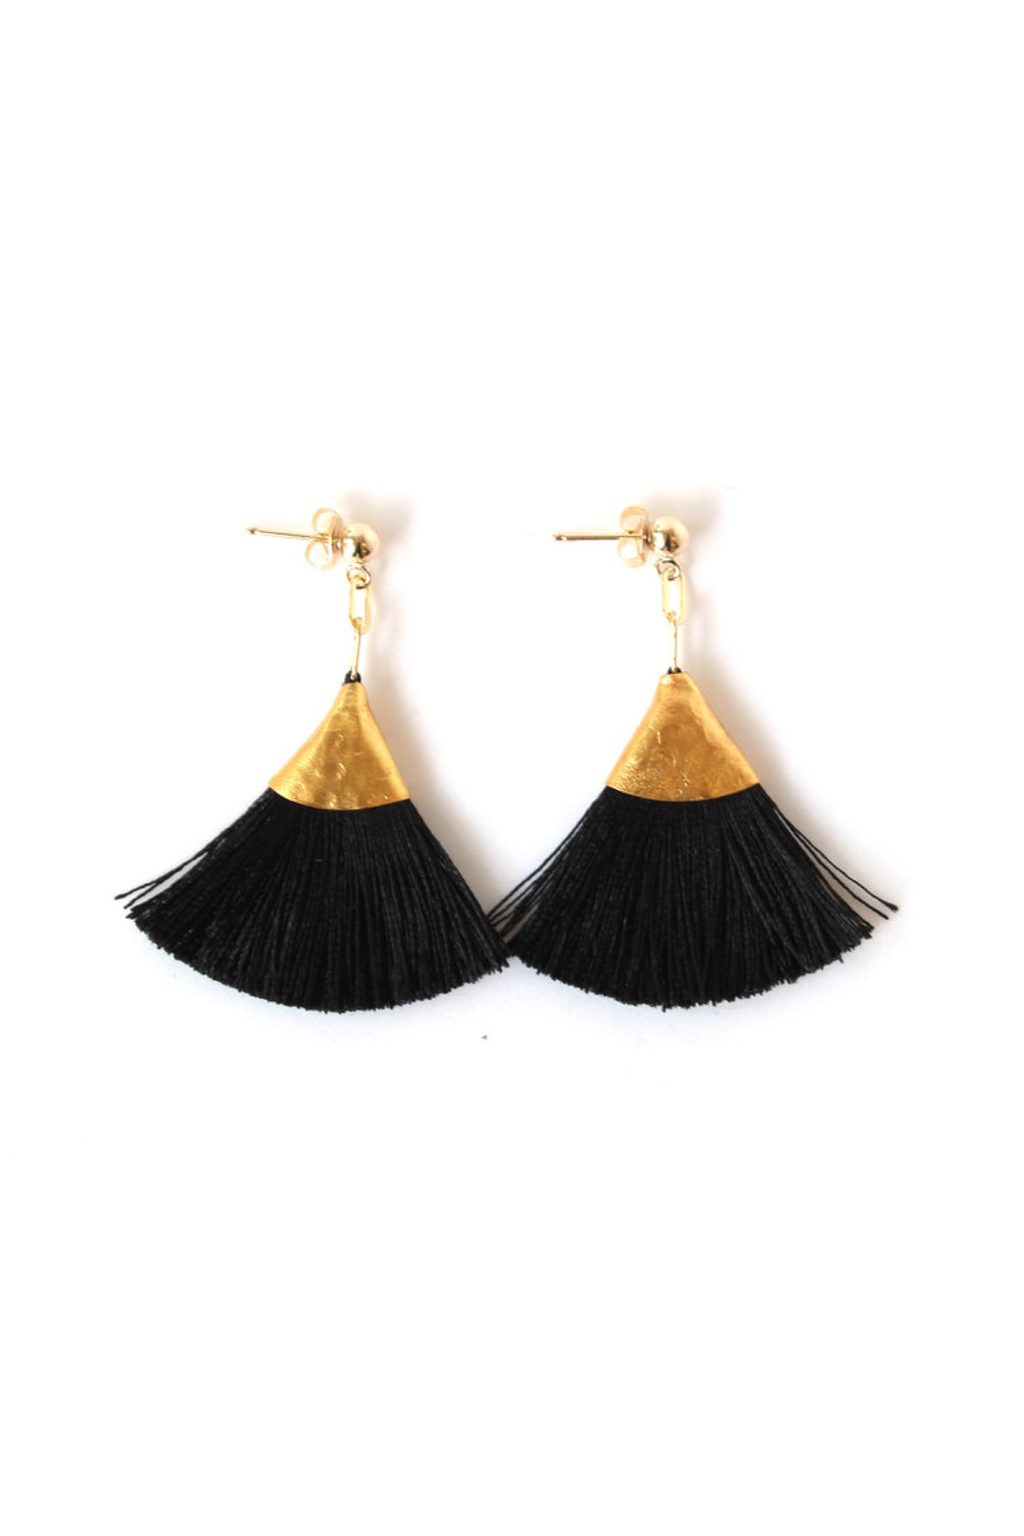 Black Josie Tassel Earrings - ROSE MADE SHOP